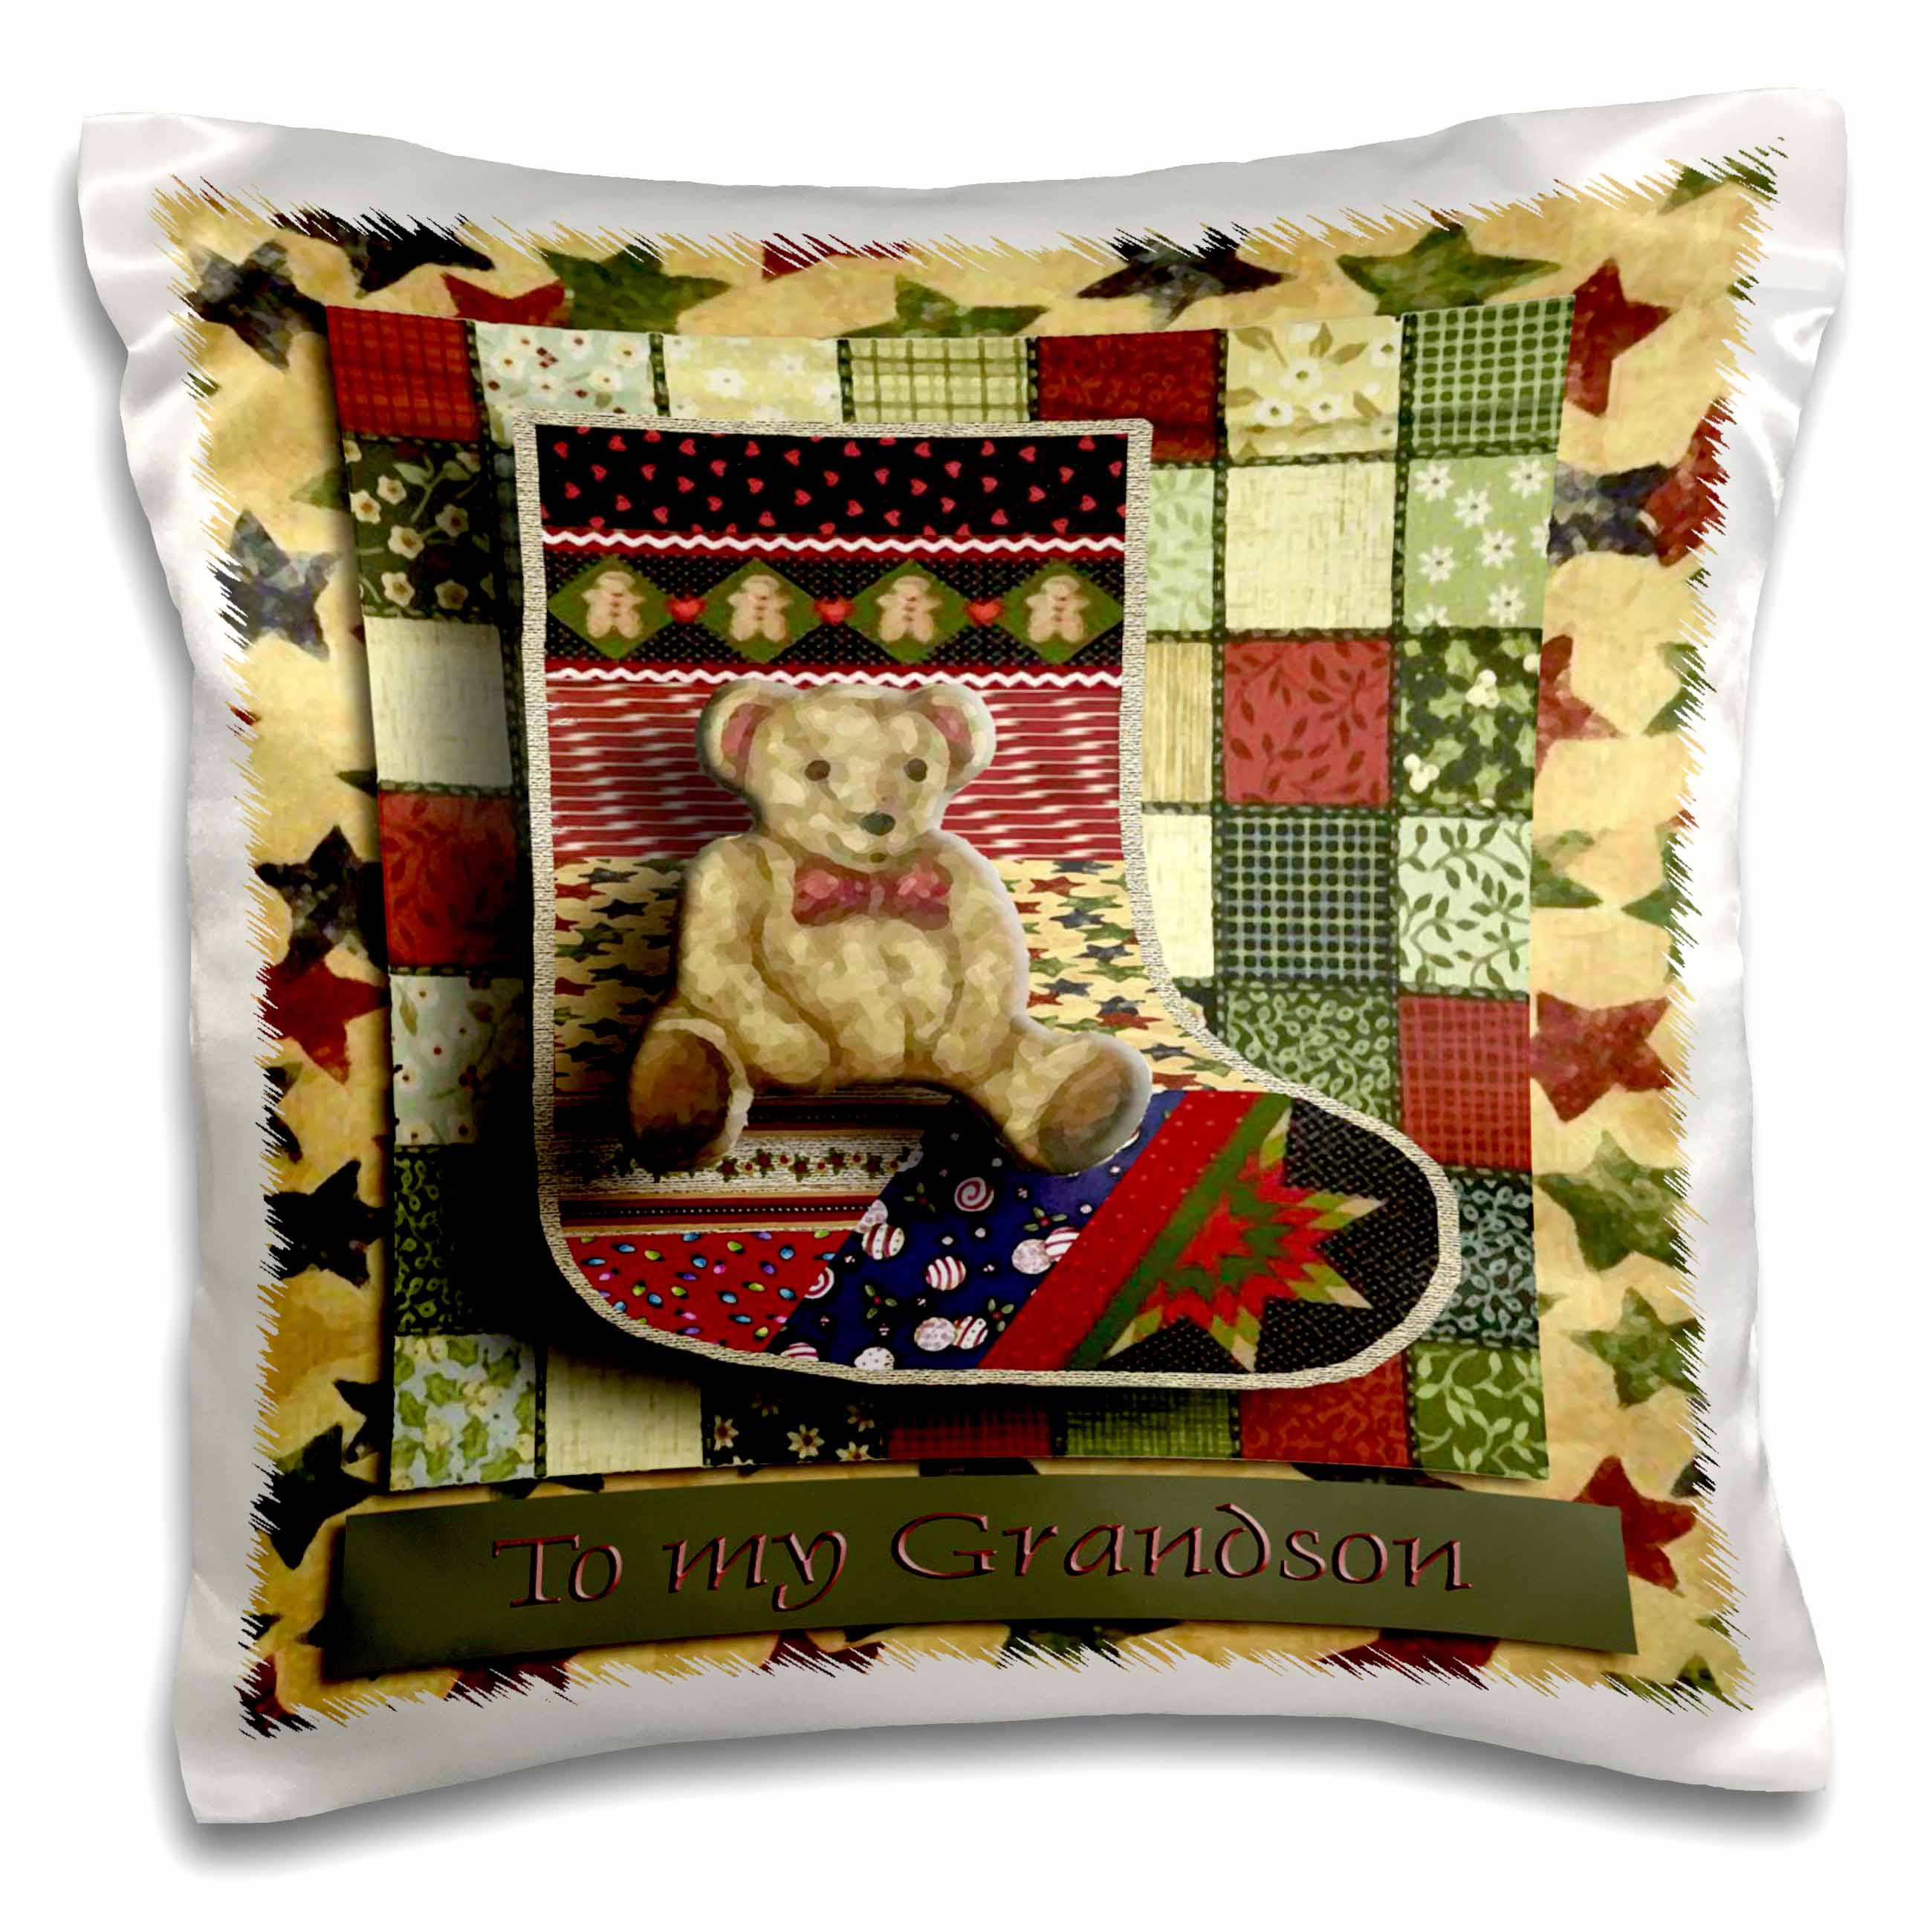 3dRose Teddy Bear Stocking to my Grandson Stars, Pillow Case, 16 by 16-inch by 3dRose